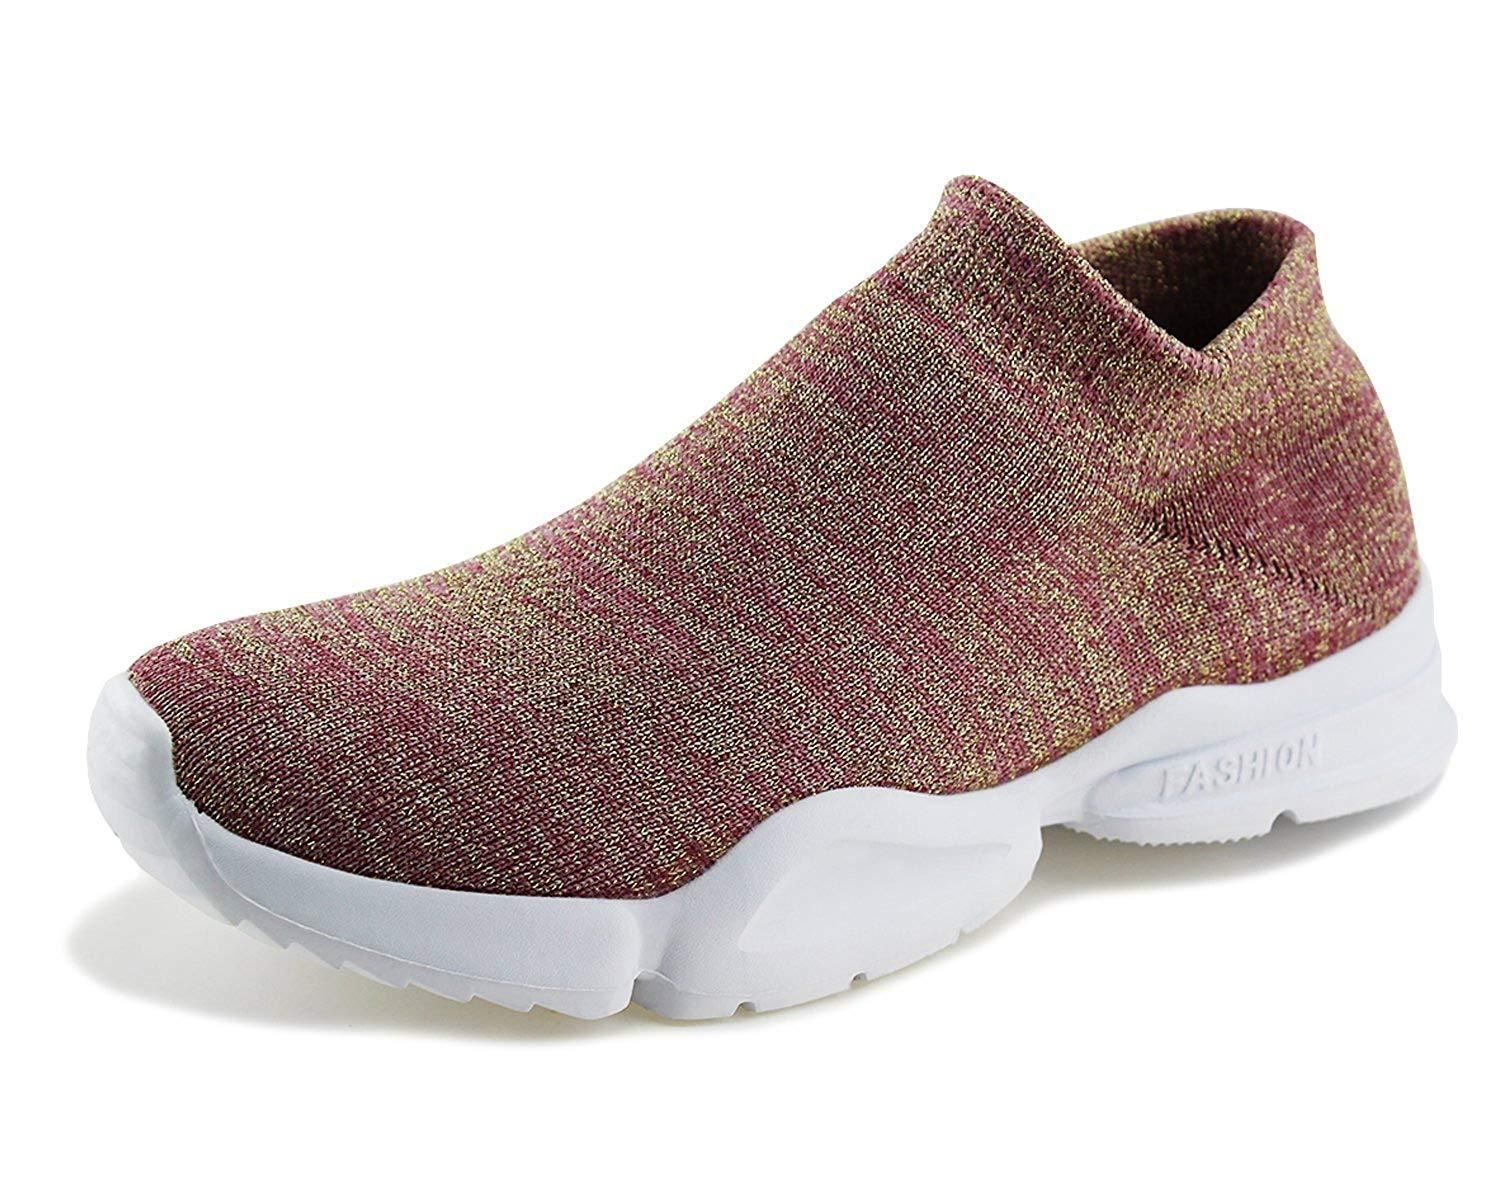 Jabasic Women Breathable Athletic Knit Shoes Casual Slip On